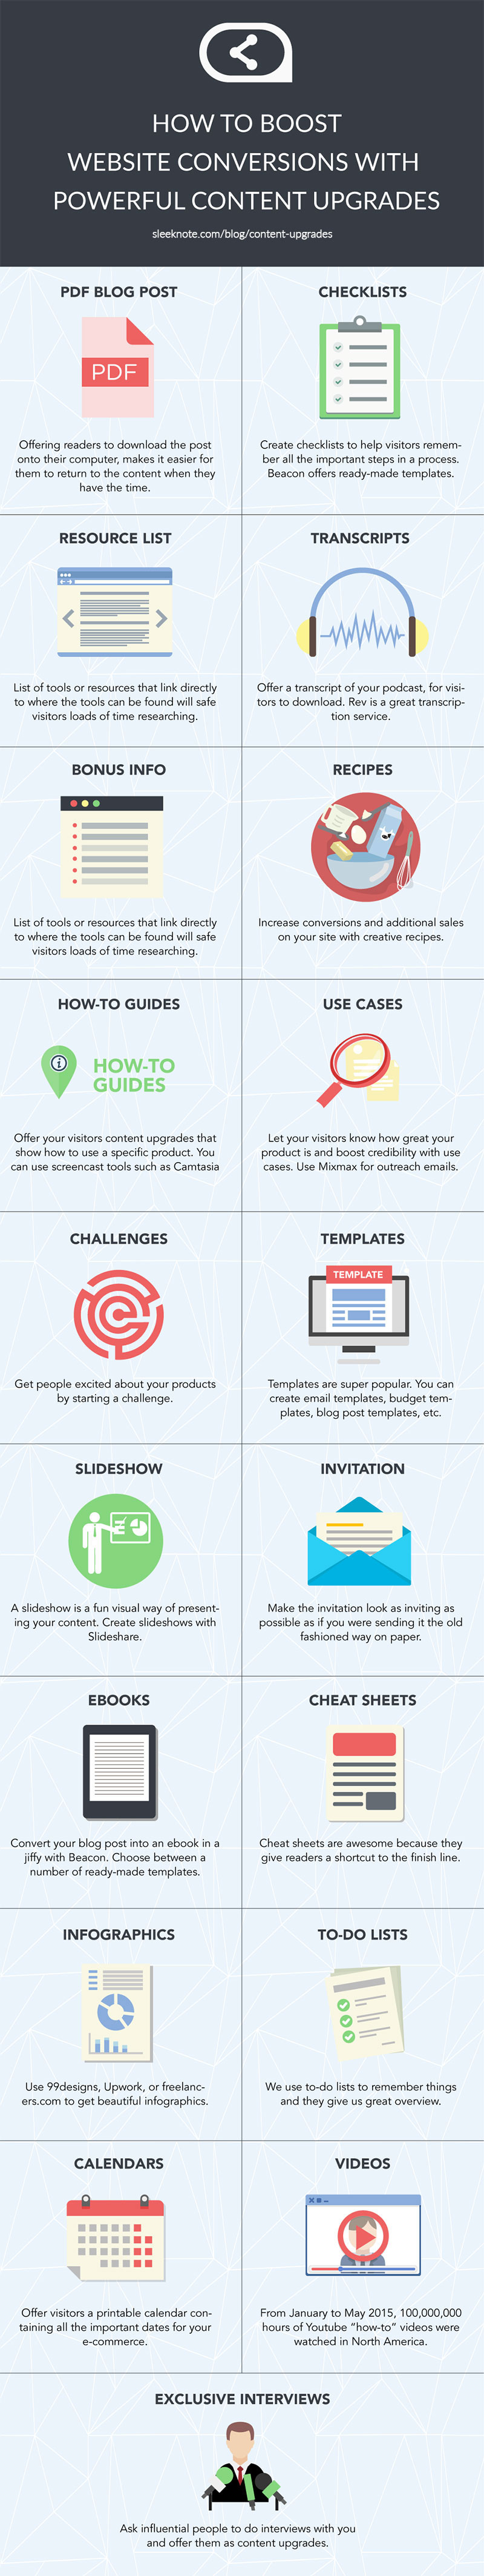 boost-website-conversions-with-content-upgrades-infographic-plaza